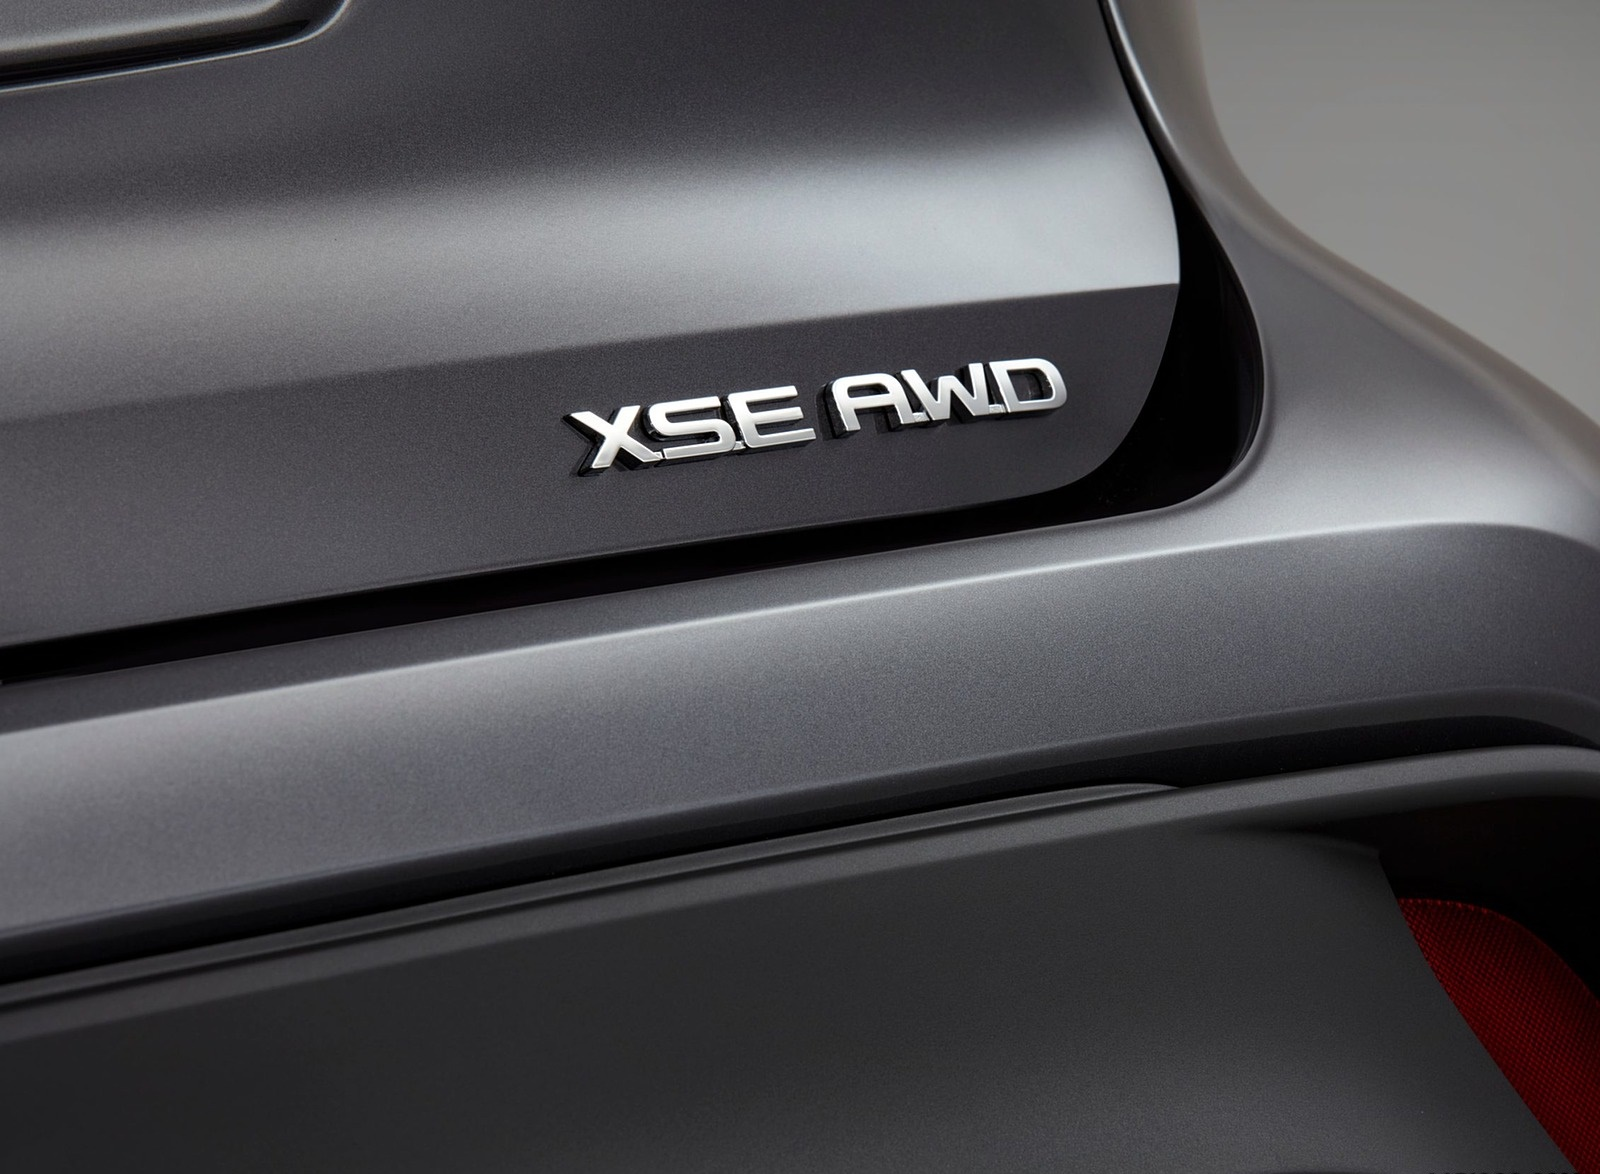 2021 Toyota Highlander XSE AWD Badge Wallpapers (10)